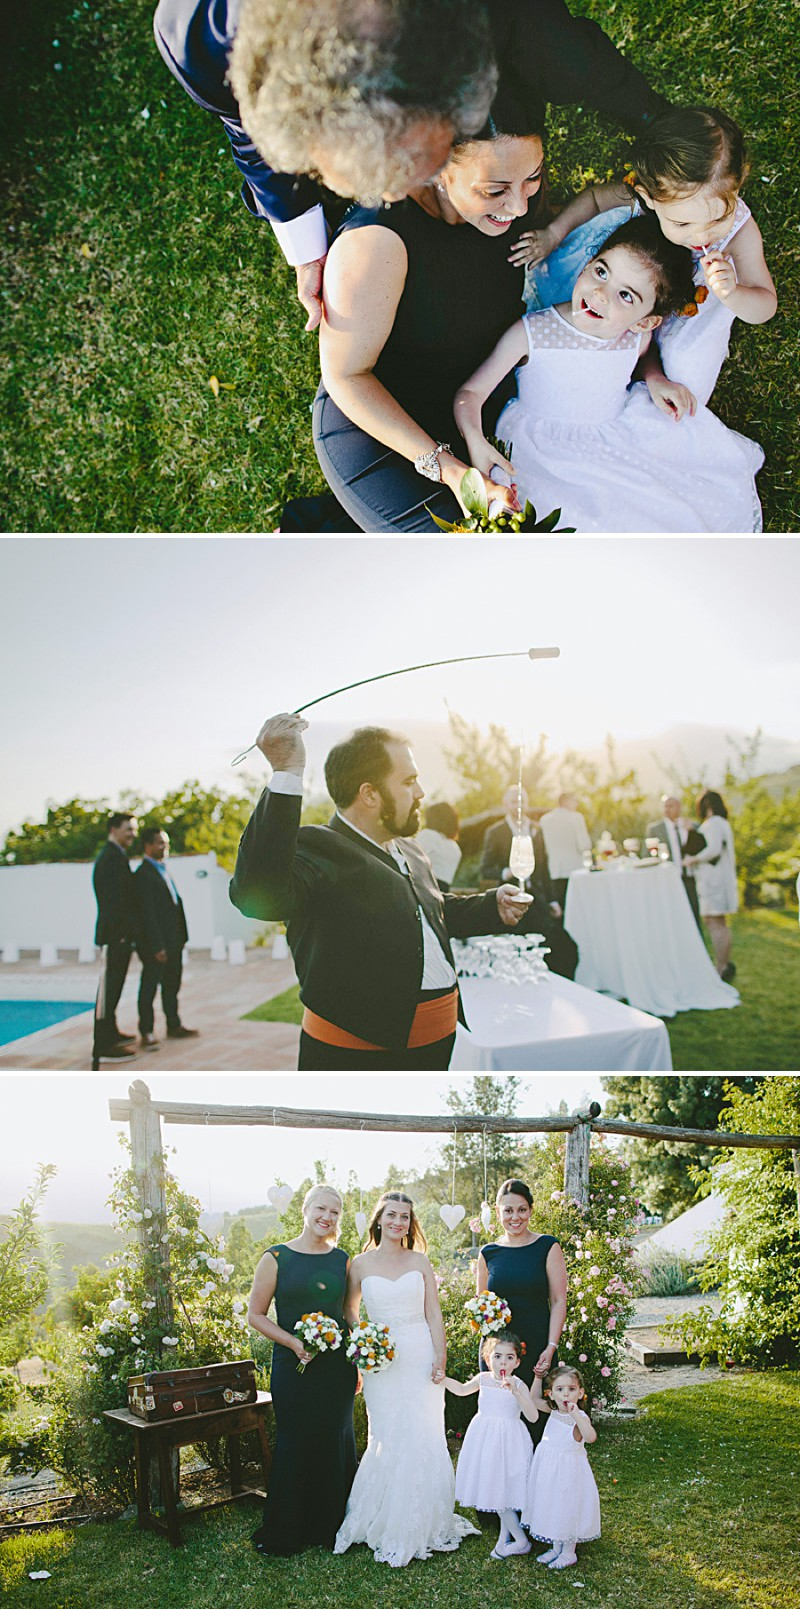 Destination Wedding In Gaucin In Spain With An Orange And Navy Colour Scheme And A La Sposa Wedding Dress With Photography By David Jenkins._0007